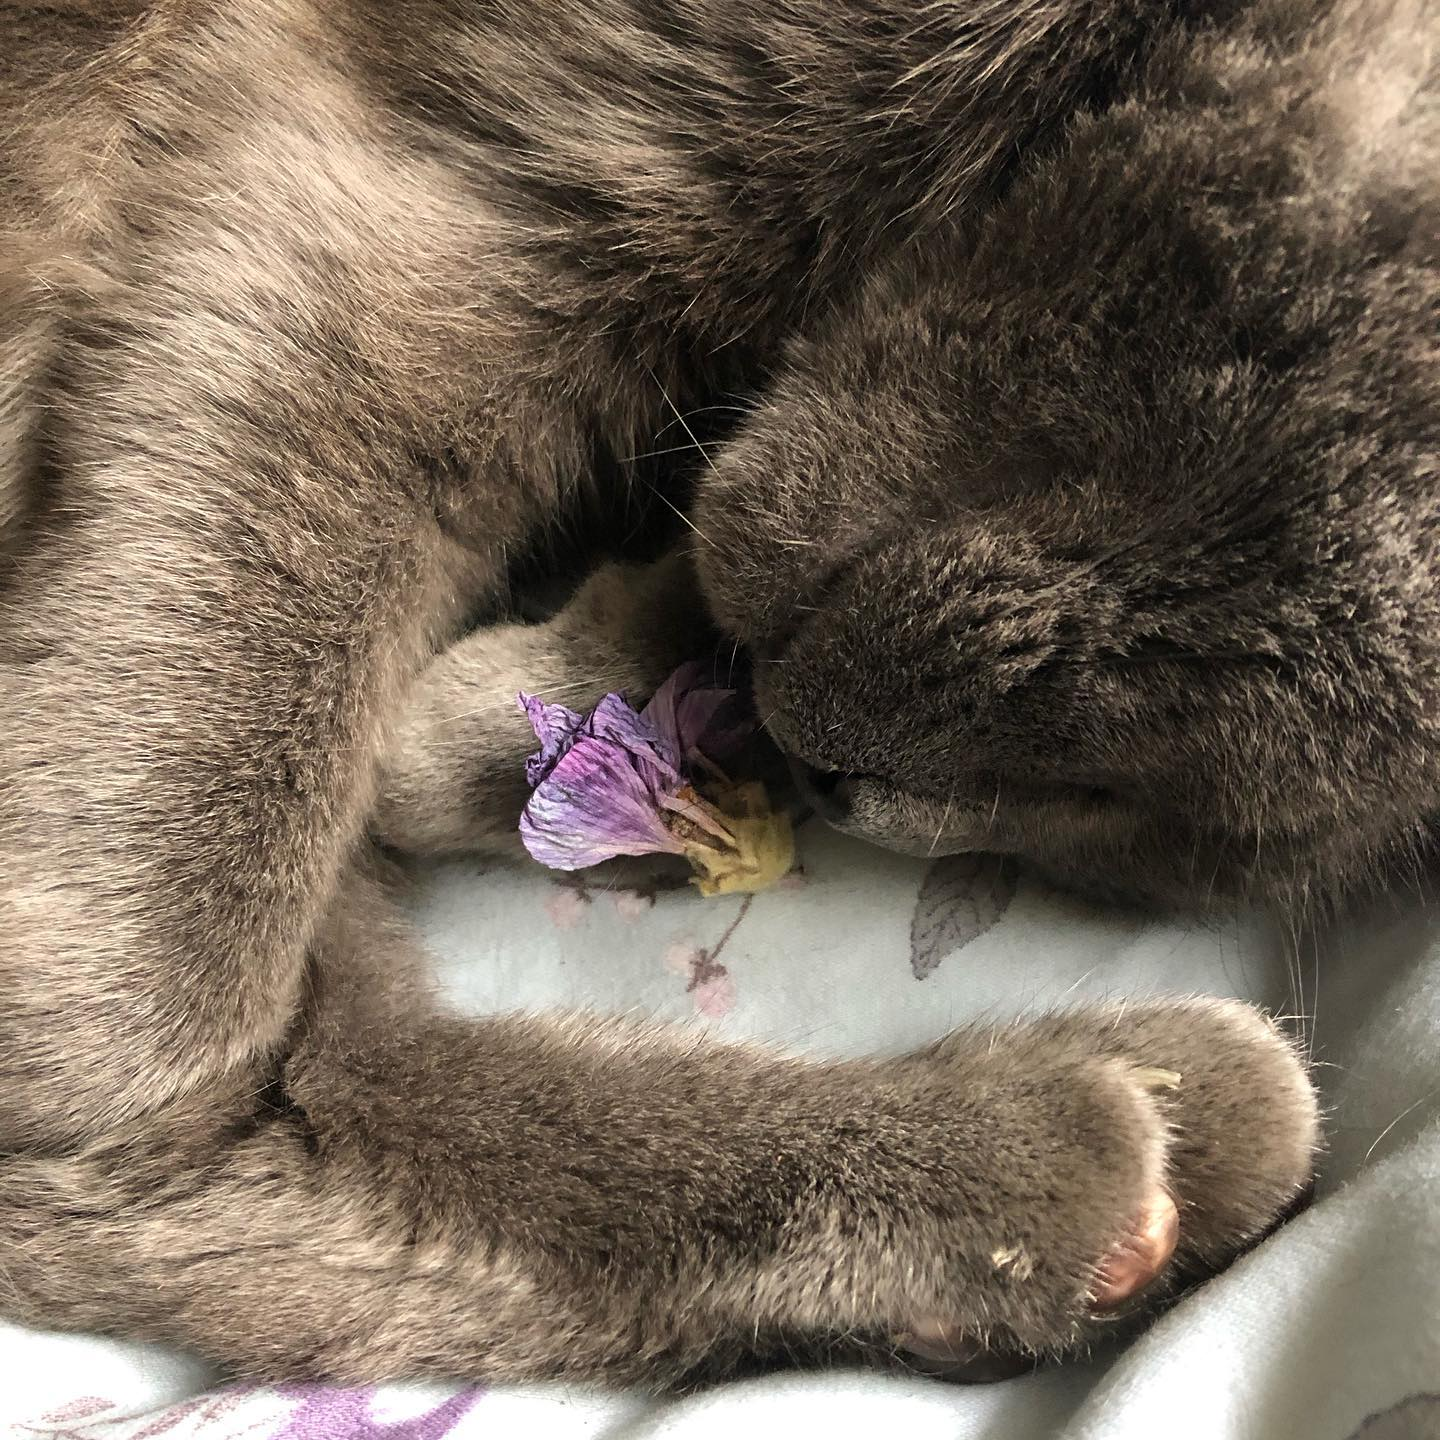 Pussy cat brought in a flower this morning.